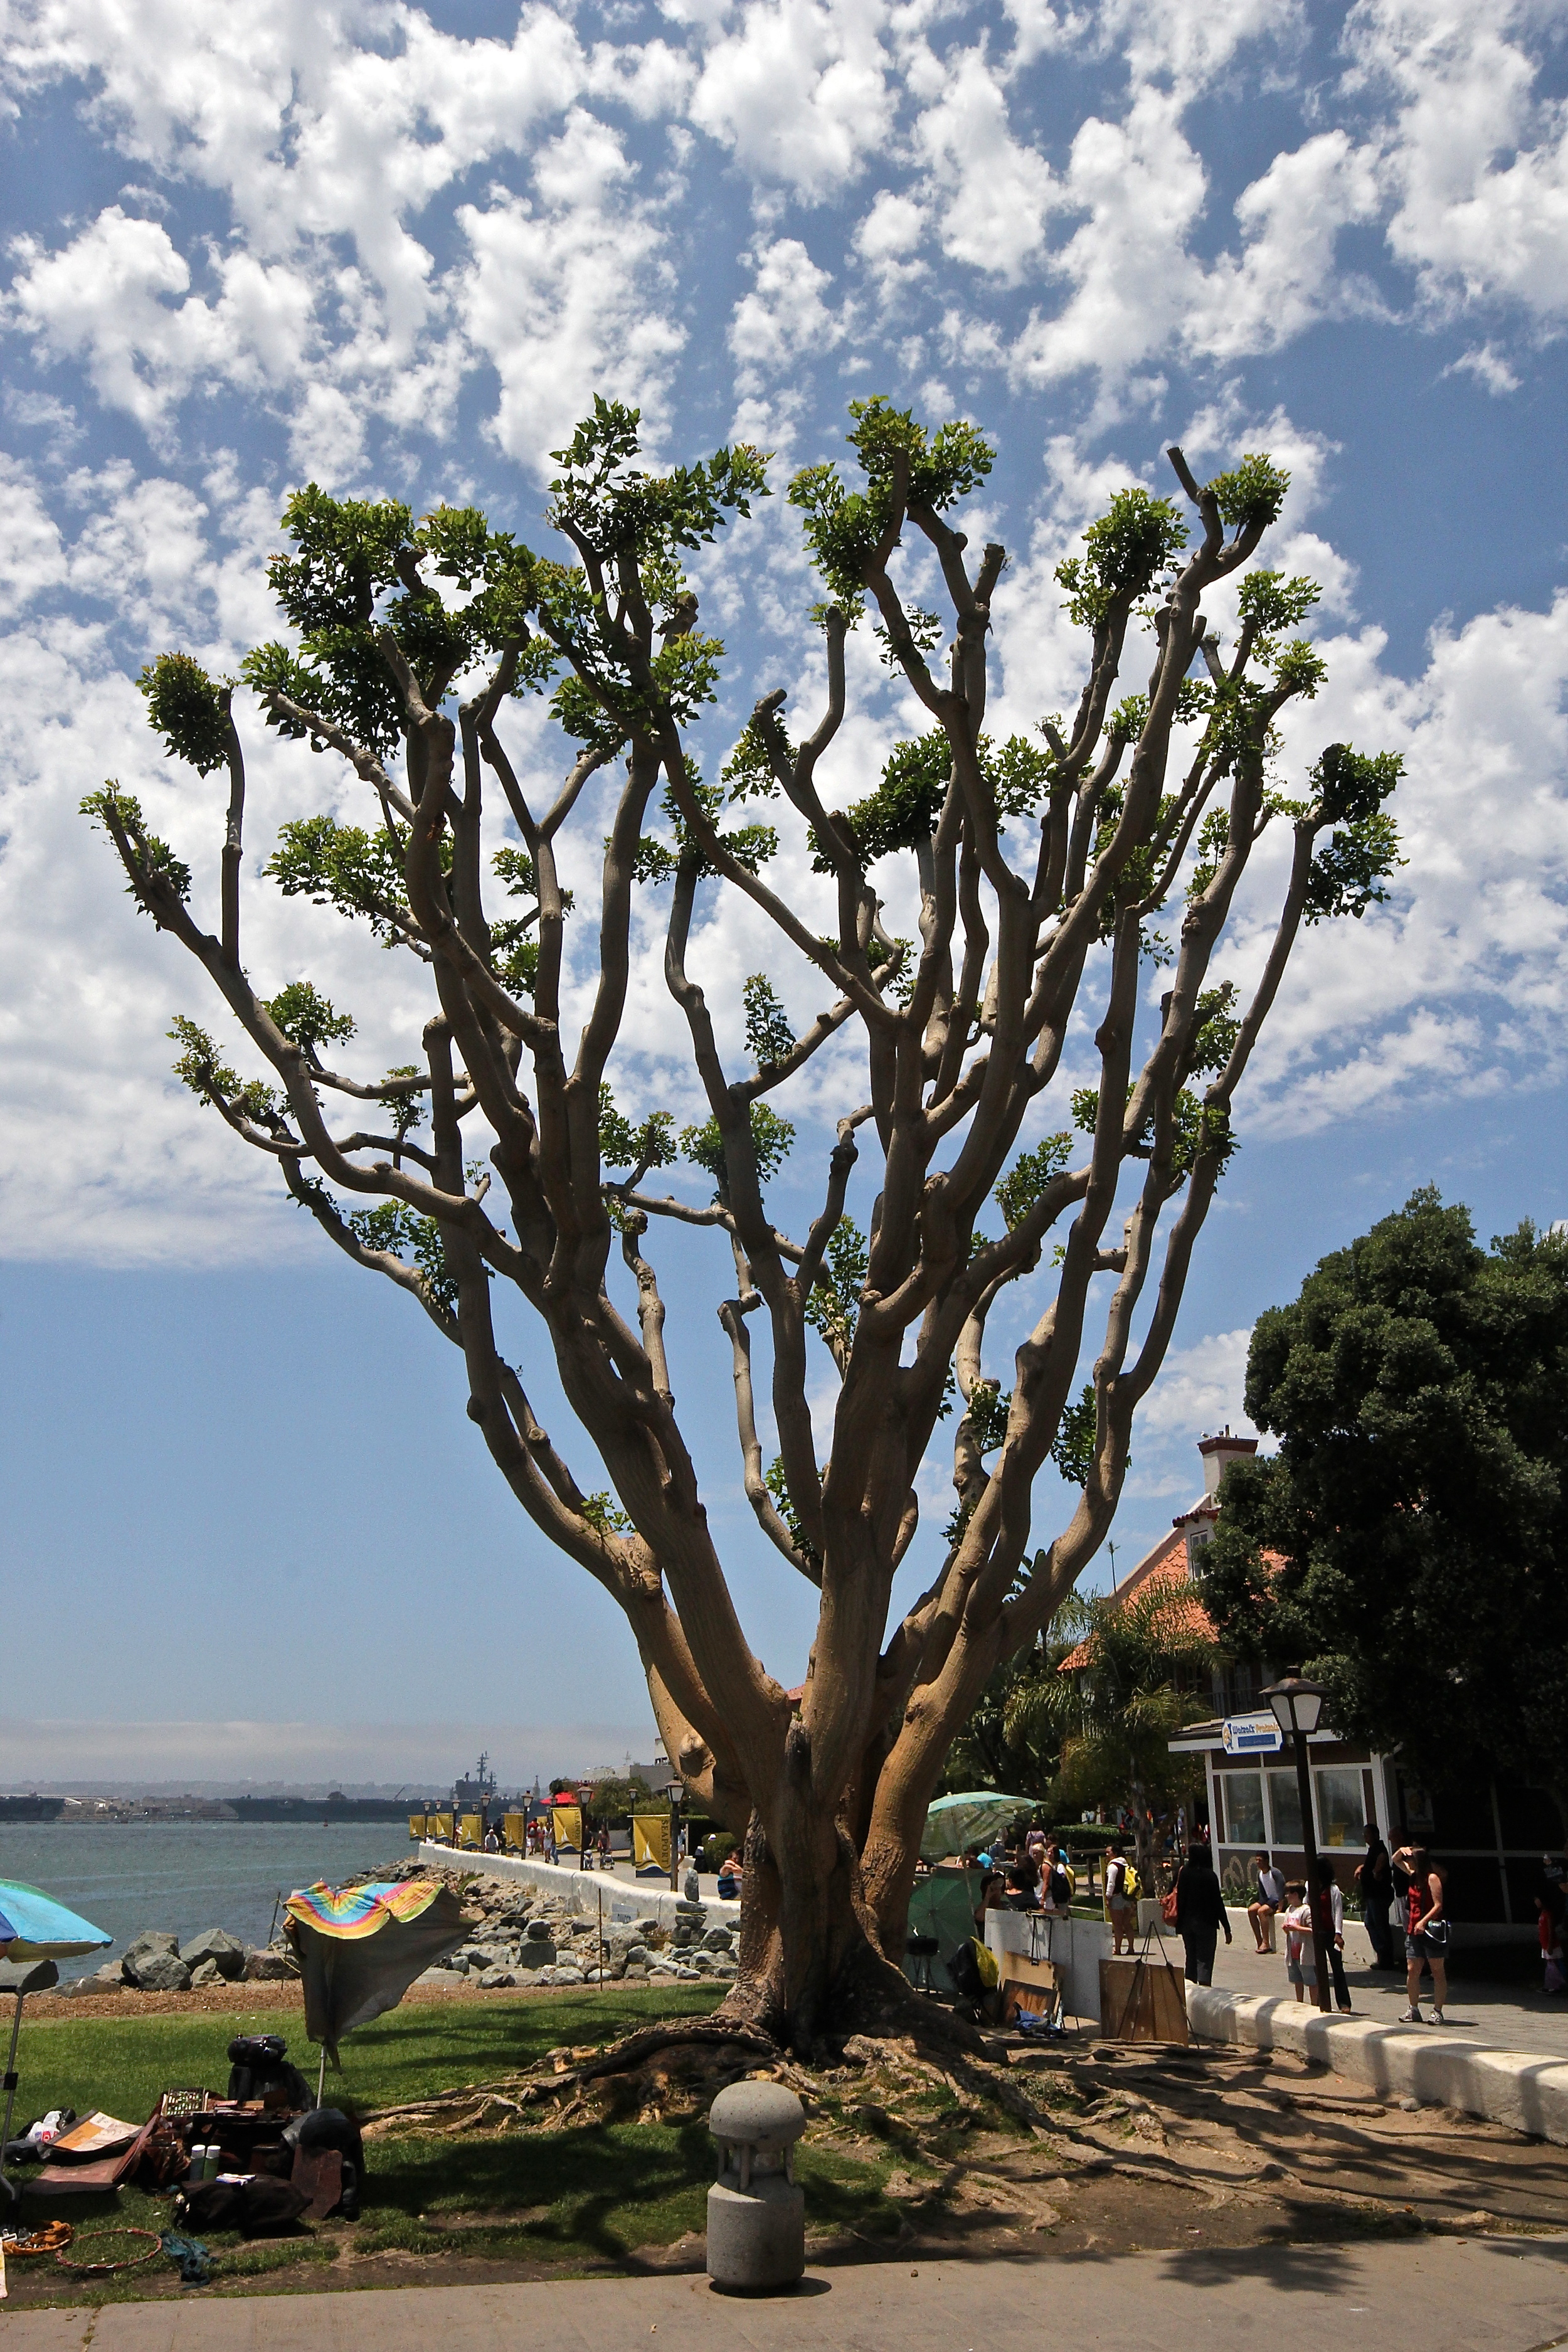 Tree at the Seaport Village